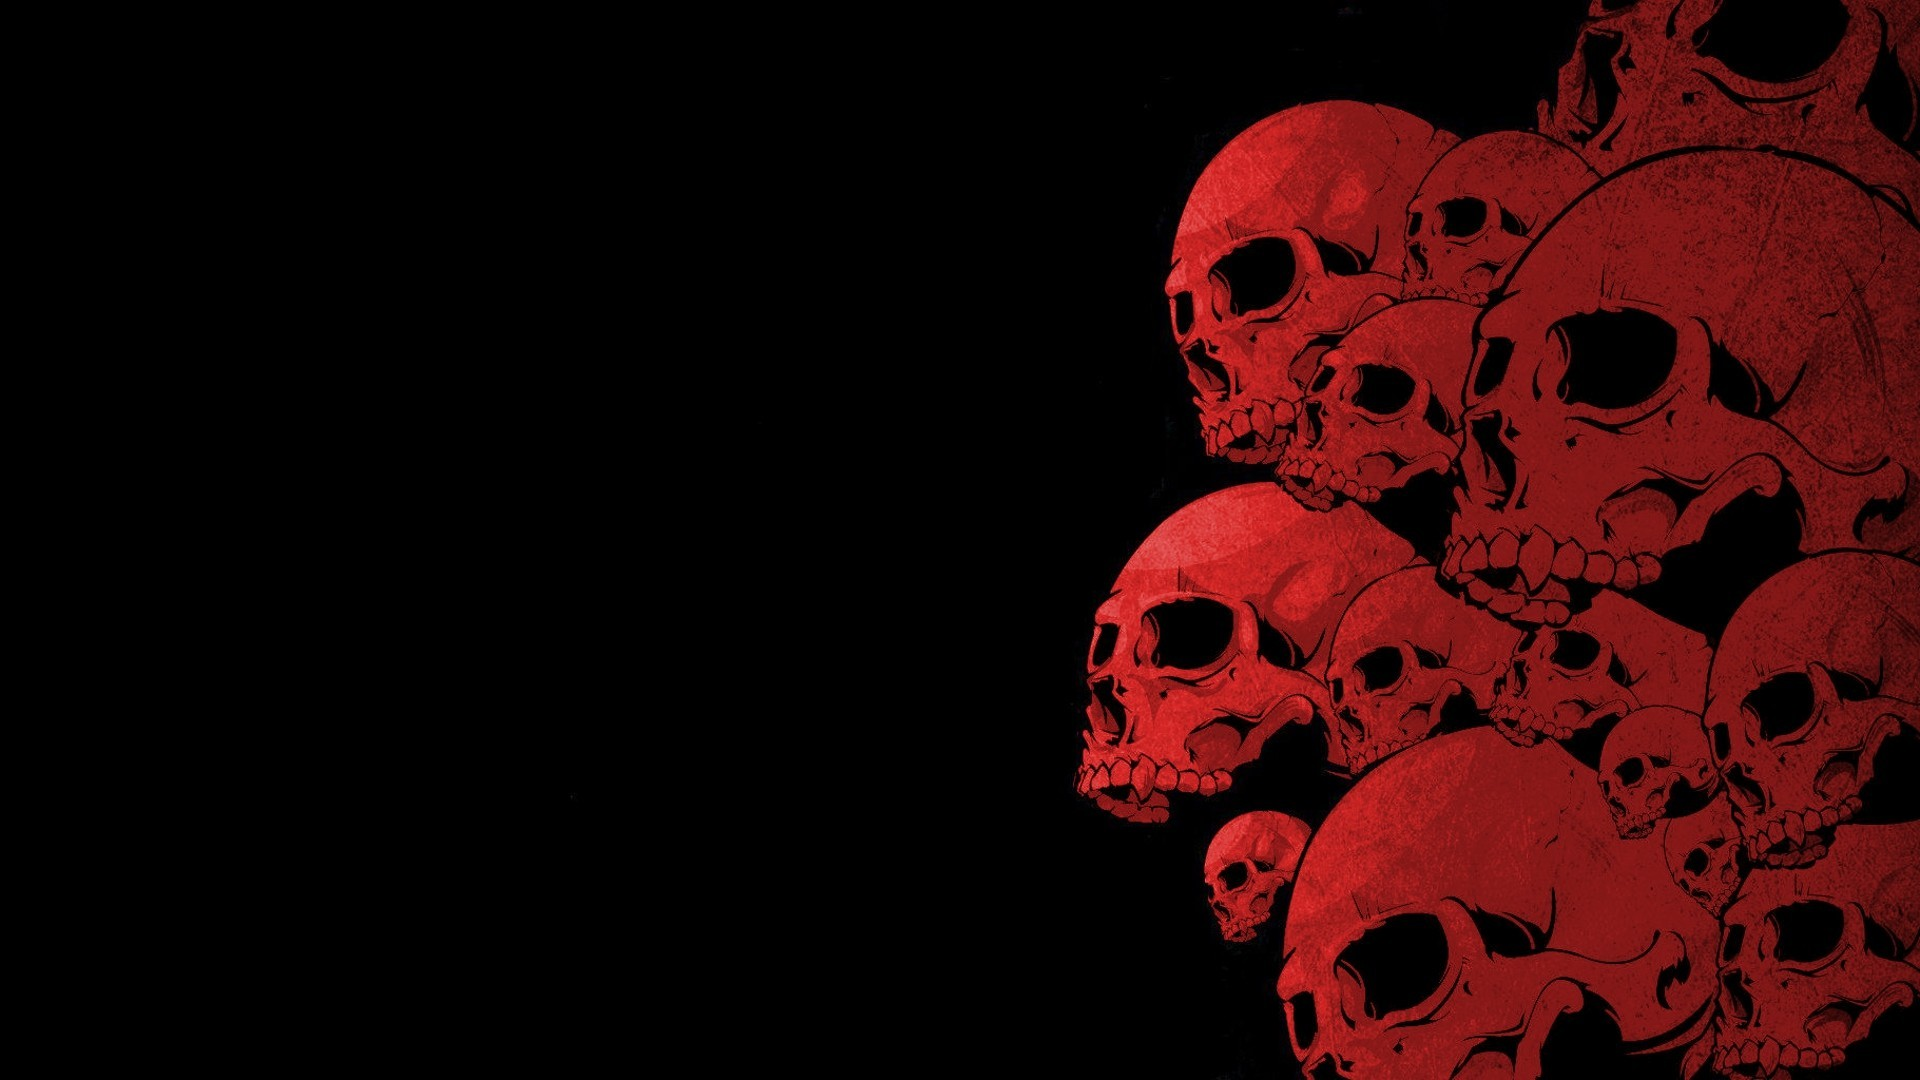 Res: 1920x1080, Dark - Skull Wallpaper